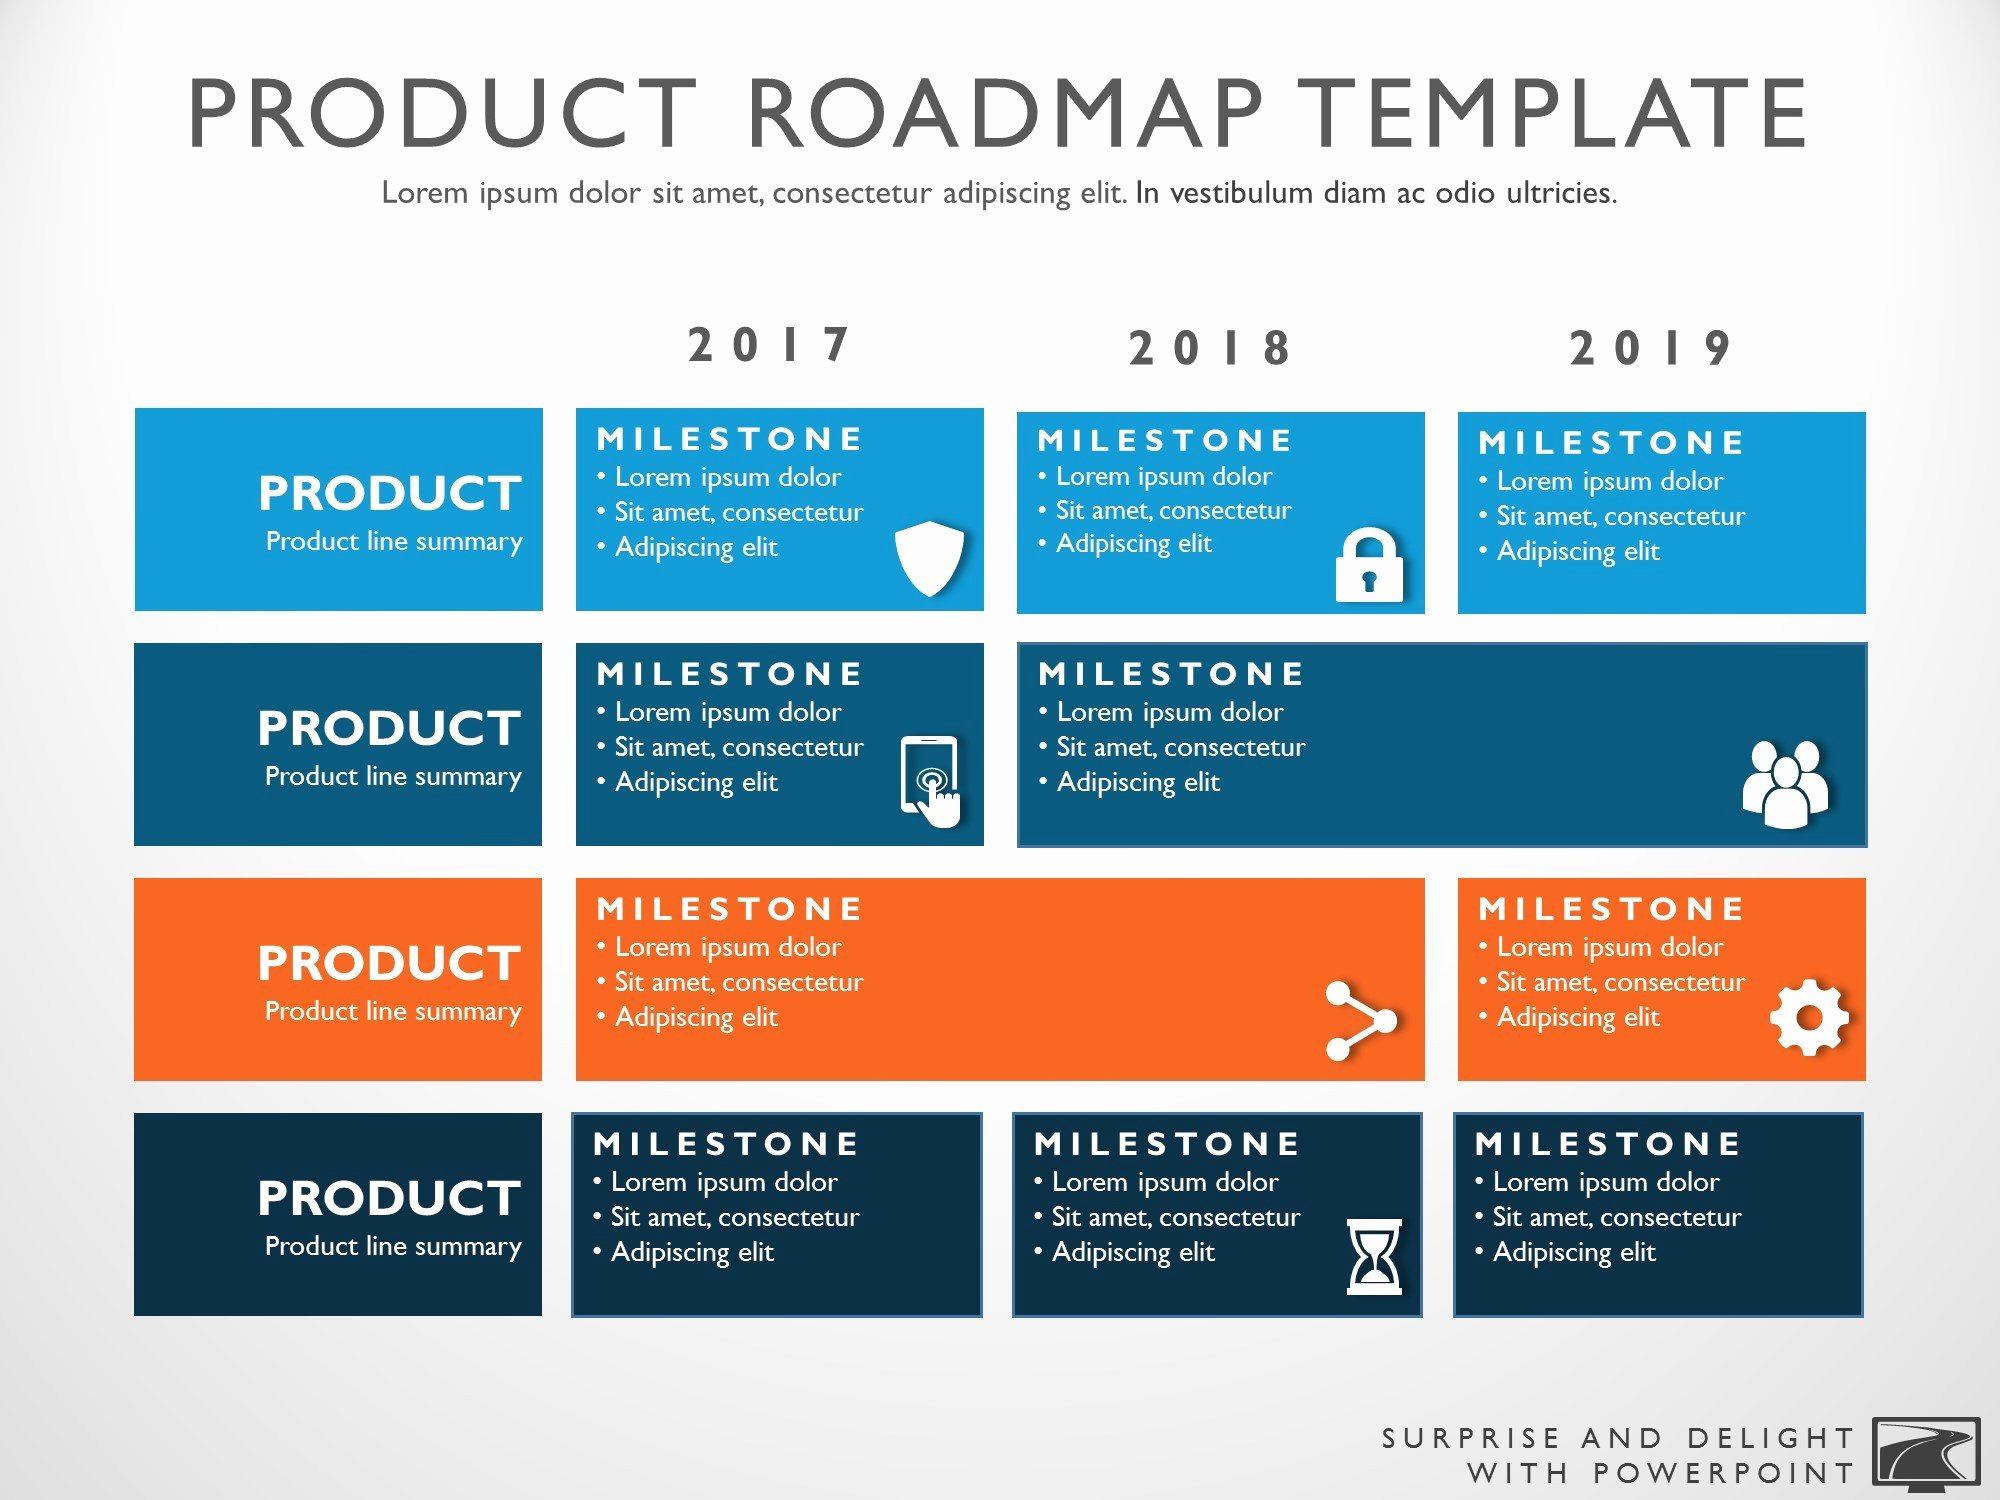 Strat Plan Powerpoint Template Unique Three Phase Business Planning Timeline Roadmapping